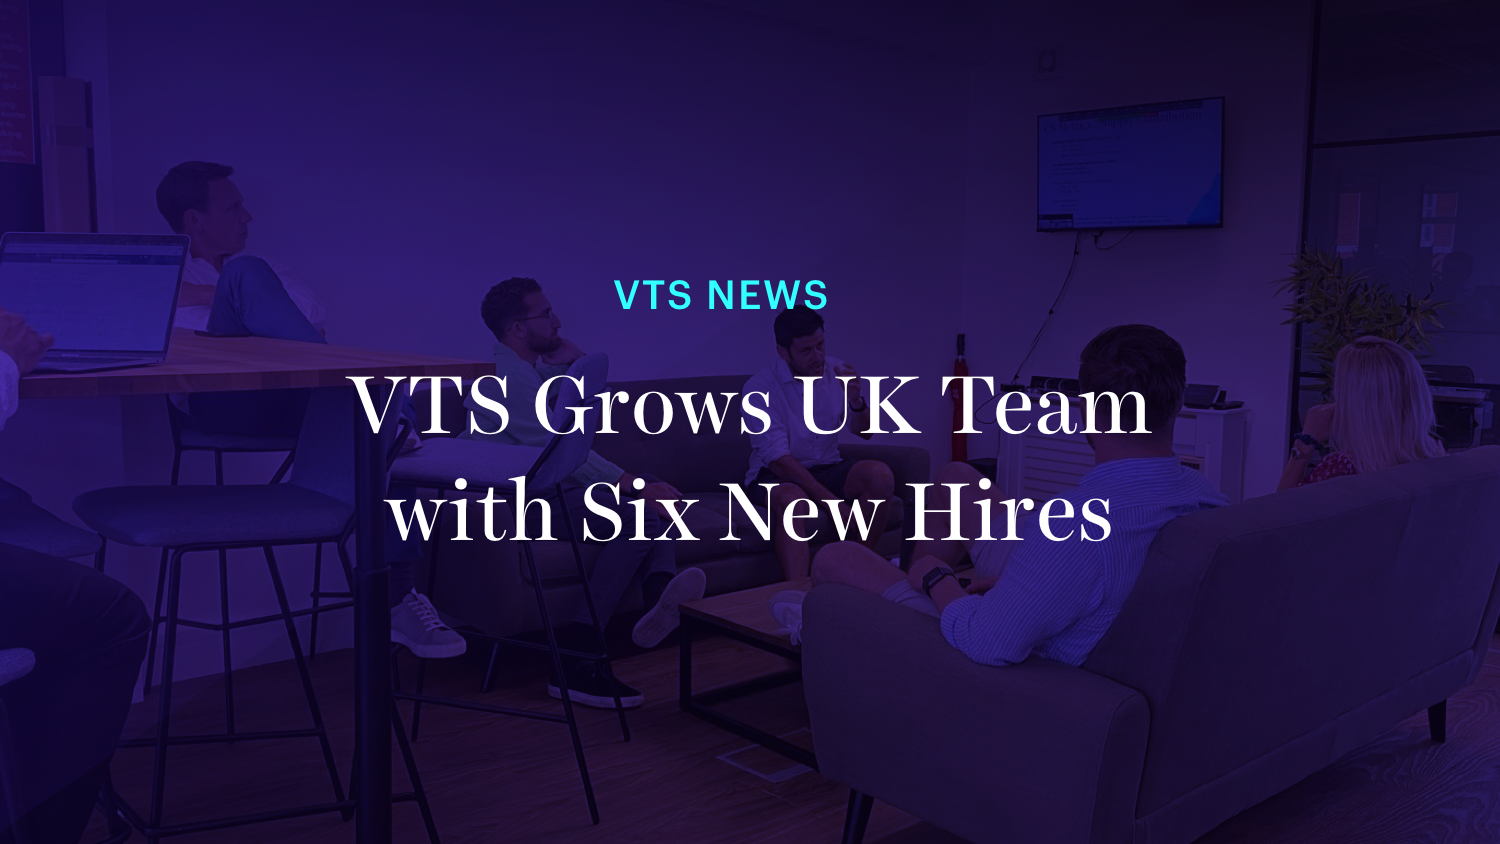 VTS Grows UK Team with Six New Hires!